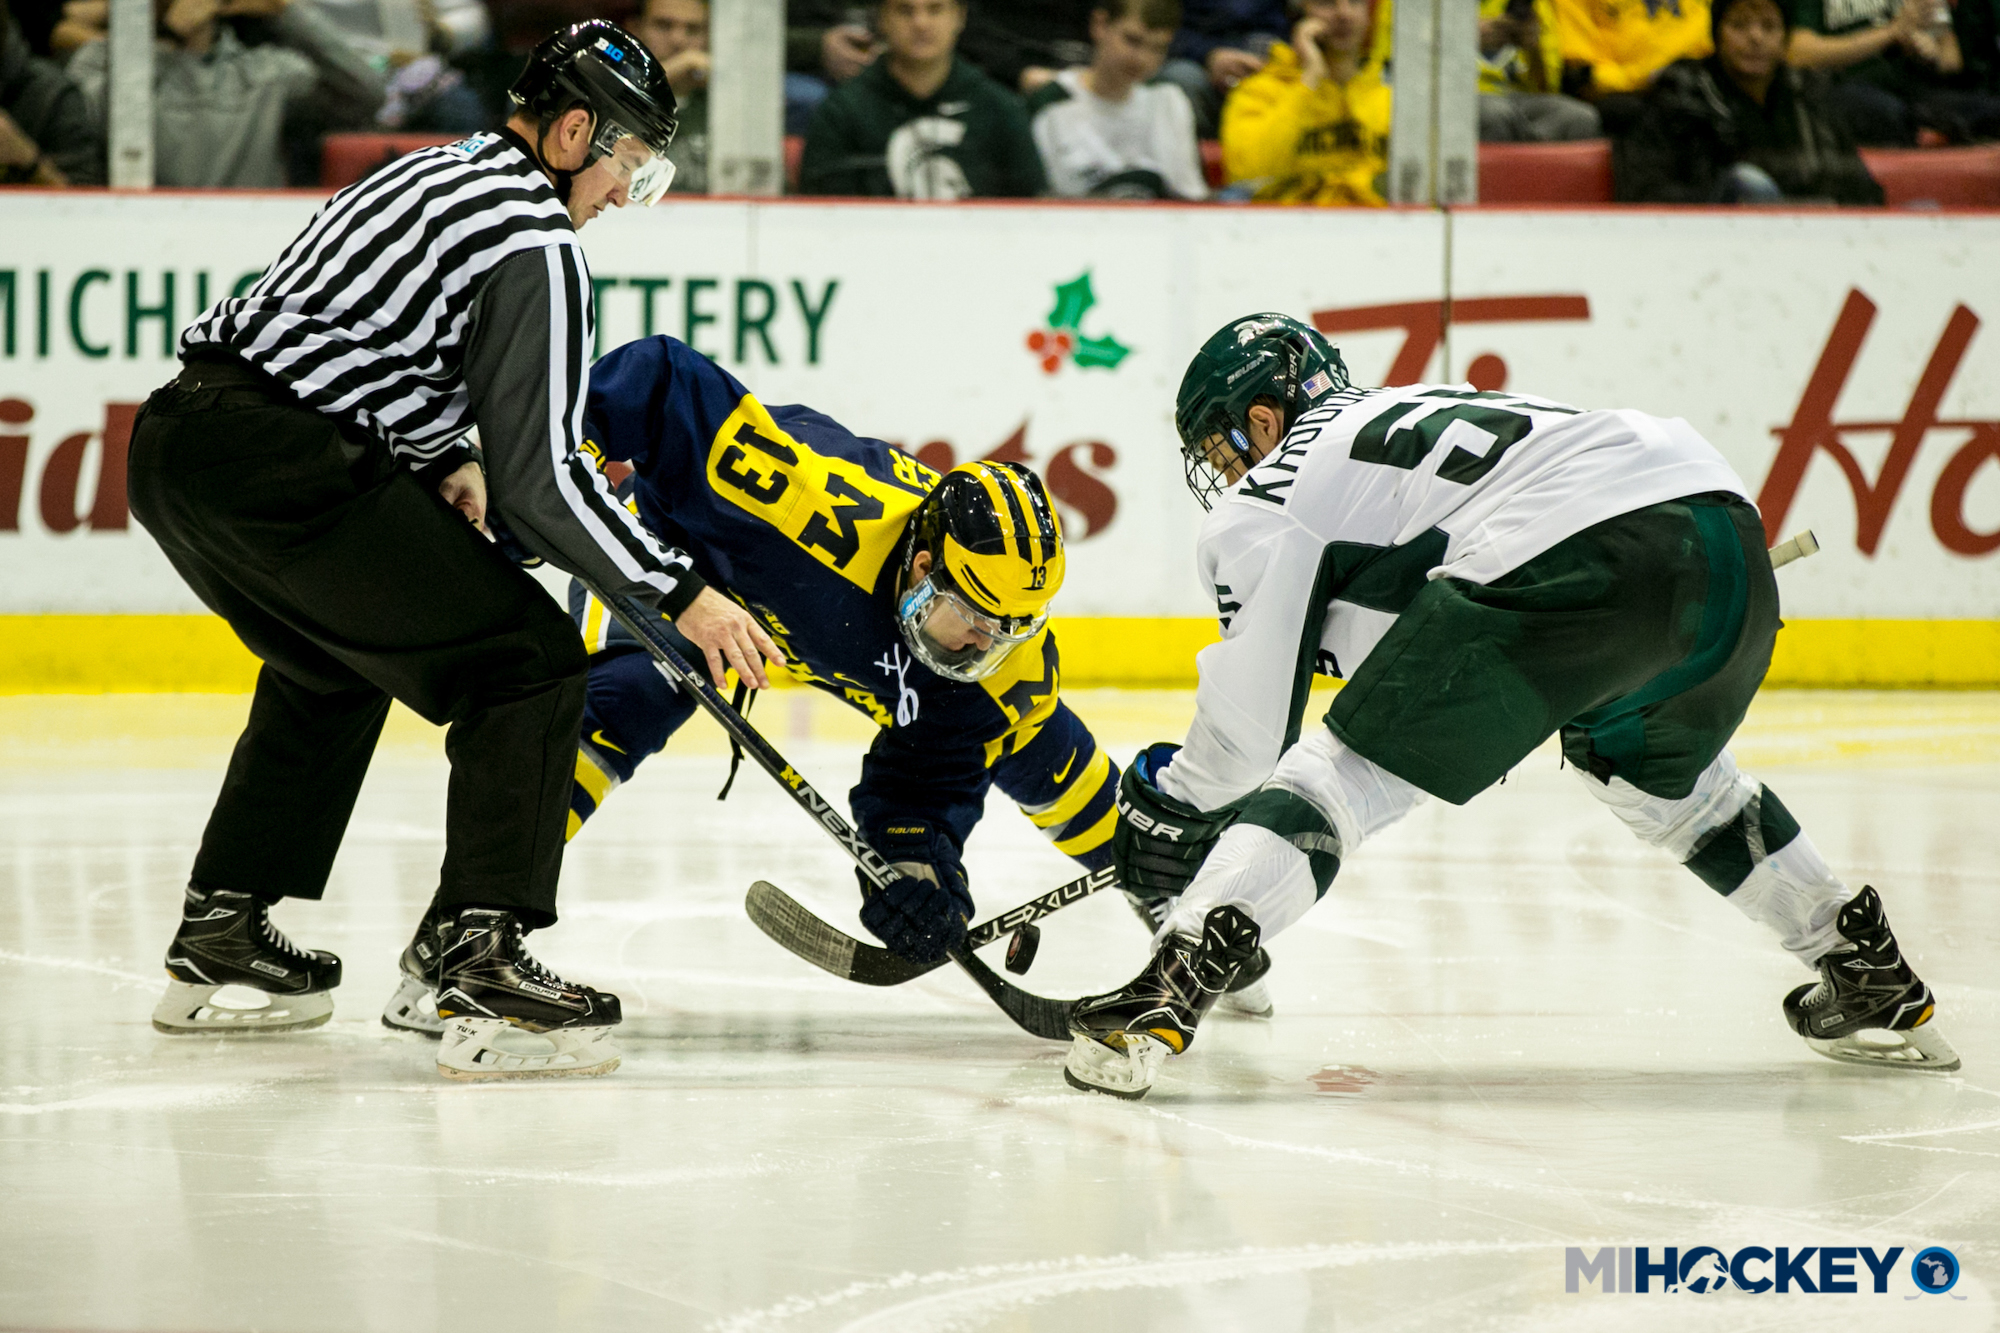 2018 Big Ten Men's Ice Hockey Tournament bracket announced